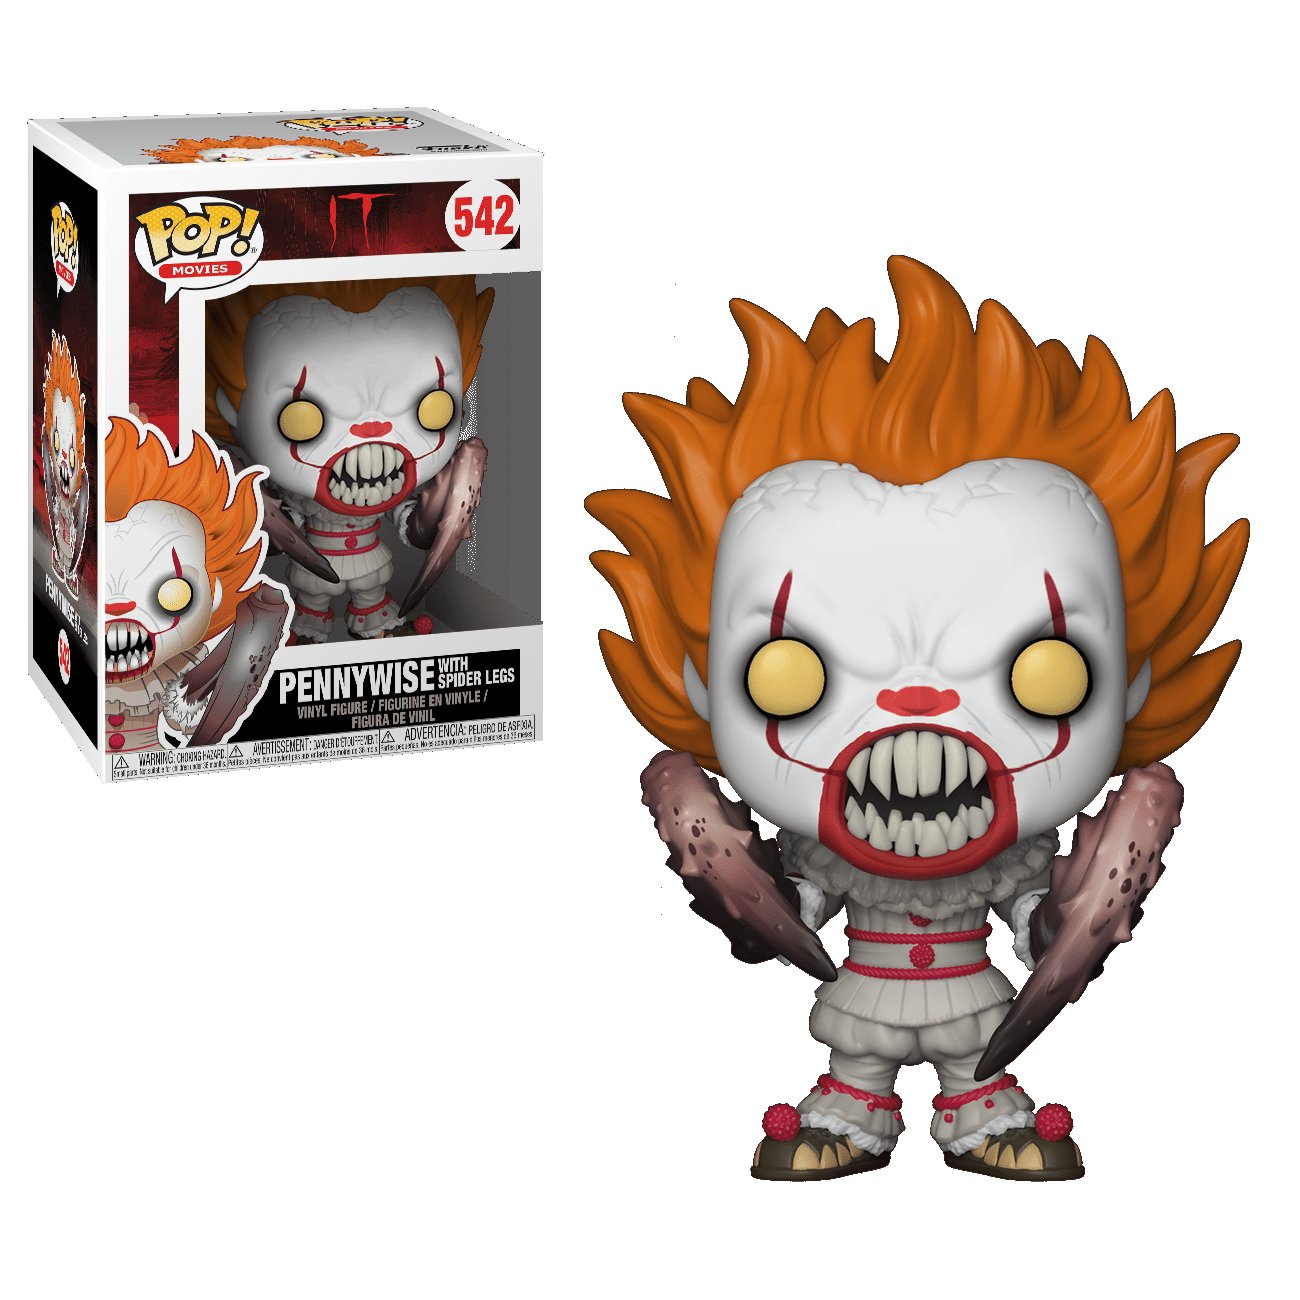 Pennywise with Spider Legs IT �542 Funko POP! Action Figure Vinyl PVC Minifigure Toy